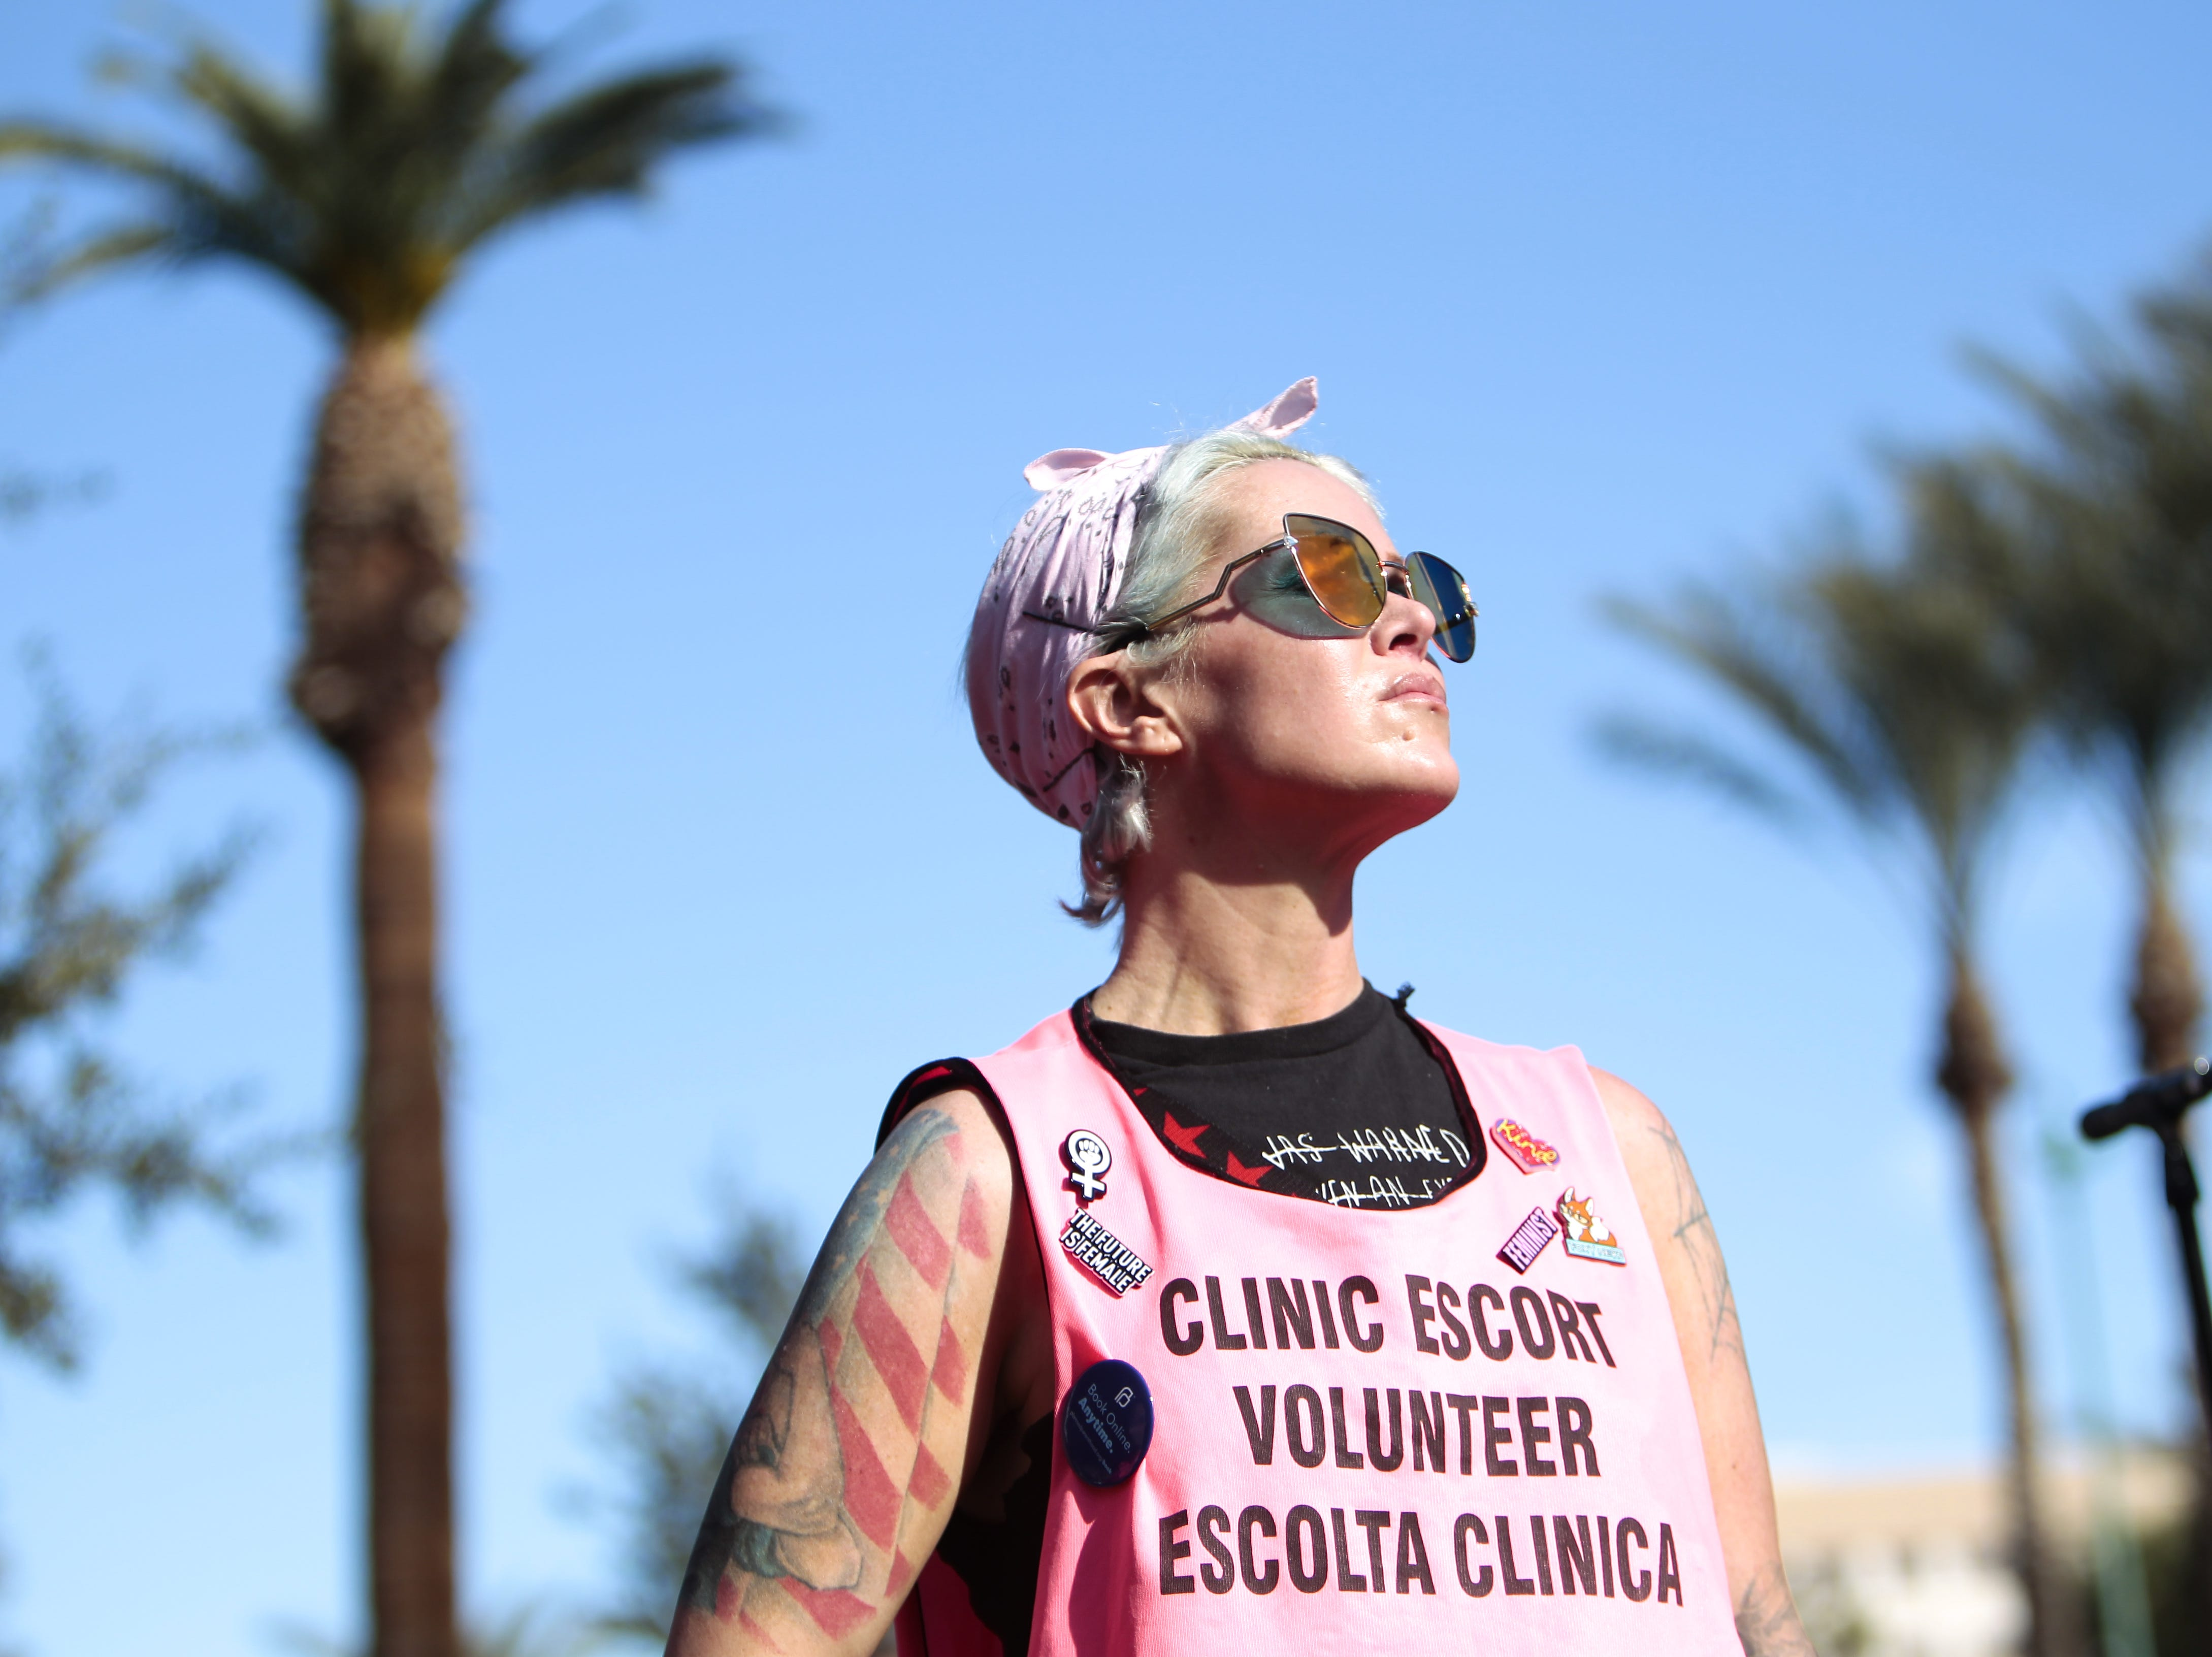 Sarah Henry, a clinic escort volunteer with the AZ Clinic Escort Force, stands between the stage and the crowd at the Phoenix Women's March on Jan. 19, 2019, at the Arizona Capitol.